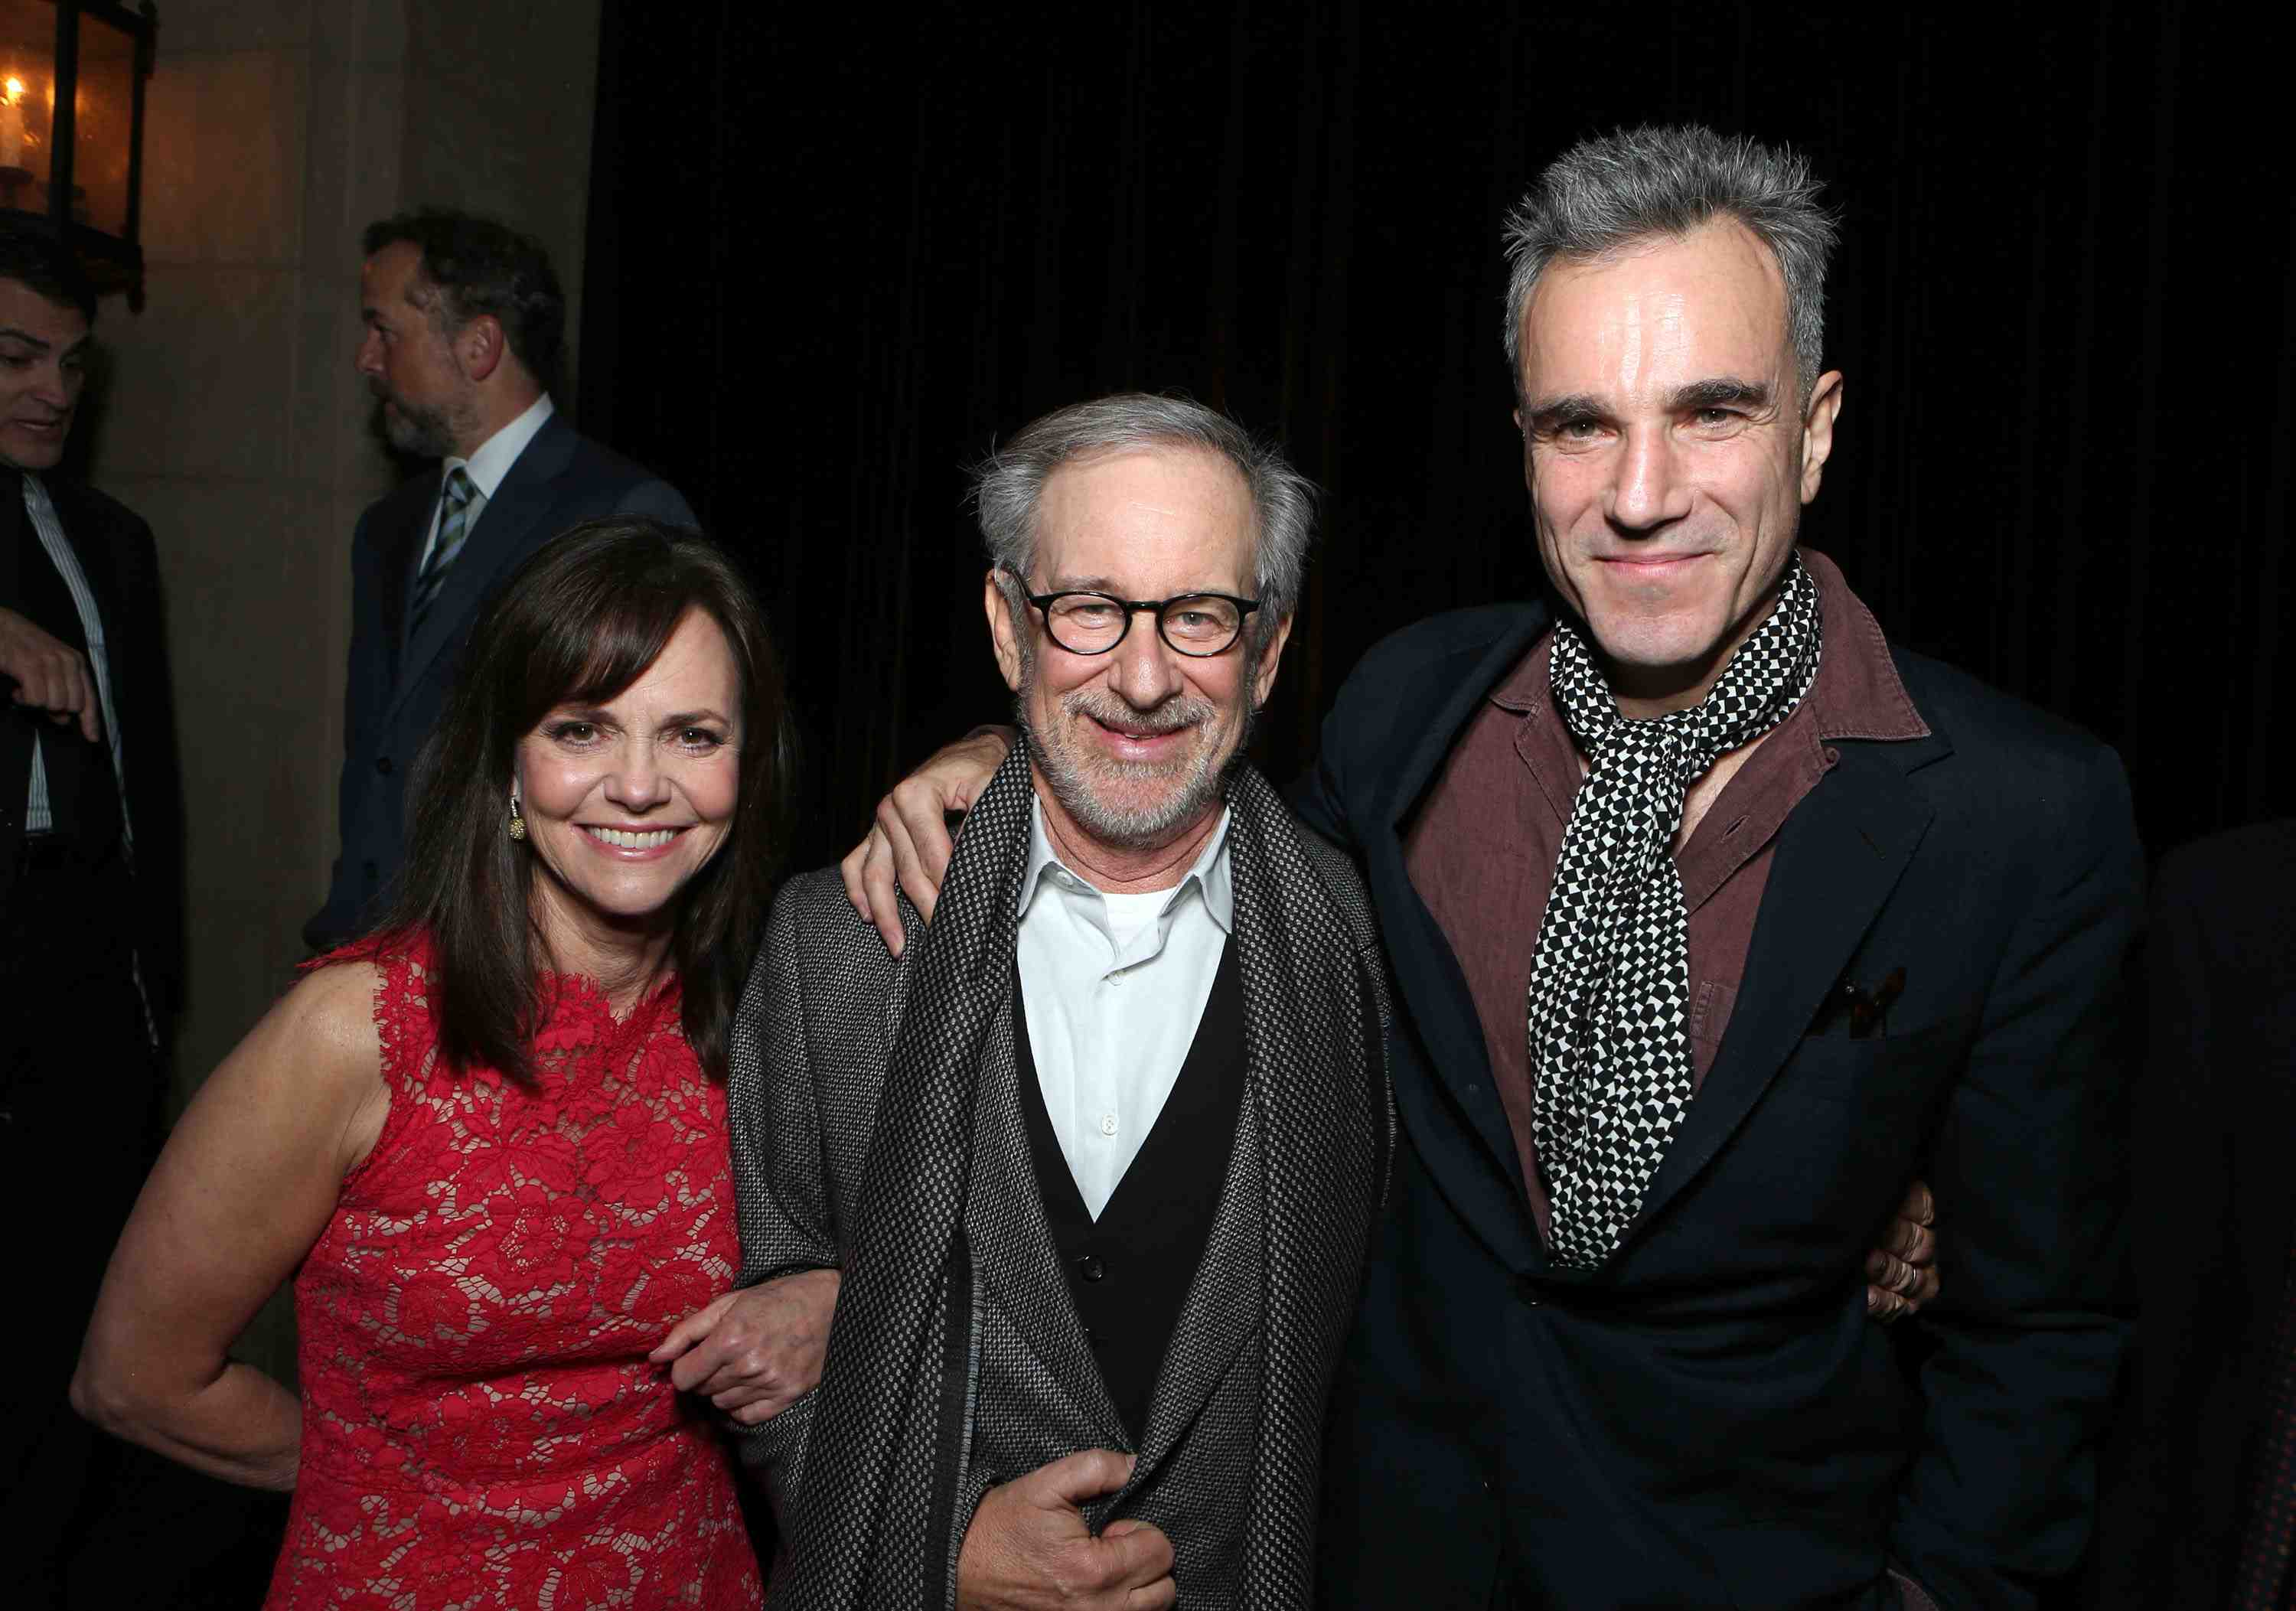 "Sally Field, Director/Producer Steven Spielberg and Daniel Day-Lewis at The World Premiere of DreamWorks Pictures ""Lincoln"" At The AFI FEST 2012 held at Grauman's Chinese Theatre on November 8, 2012 in Hollywood, California. Copyright info: 2012 DreamWorks II Distribution Co., LLC and Twentieth Century Fox Film Corporation. All Rights Reserved.  (Photo by Eric Charbonneau/WireImage) *** Local Caption *** Sally Field;Steven Spielberg;Daniel Day-Lewis The World Premiere Of DreamWorks Pictures ""Lincoln"" At The AFI FEST 2012"